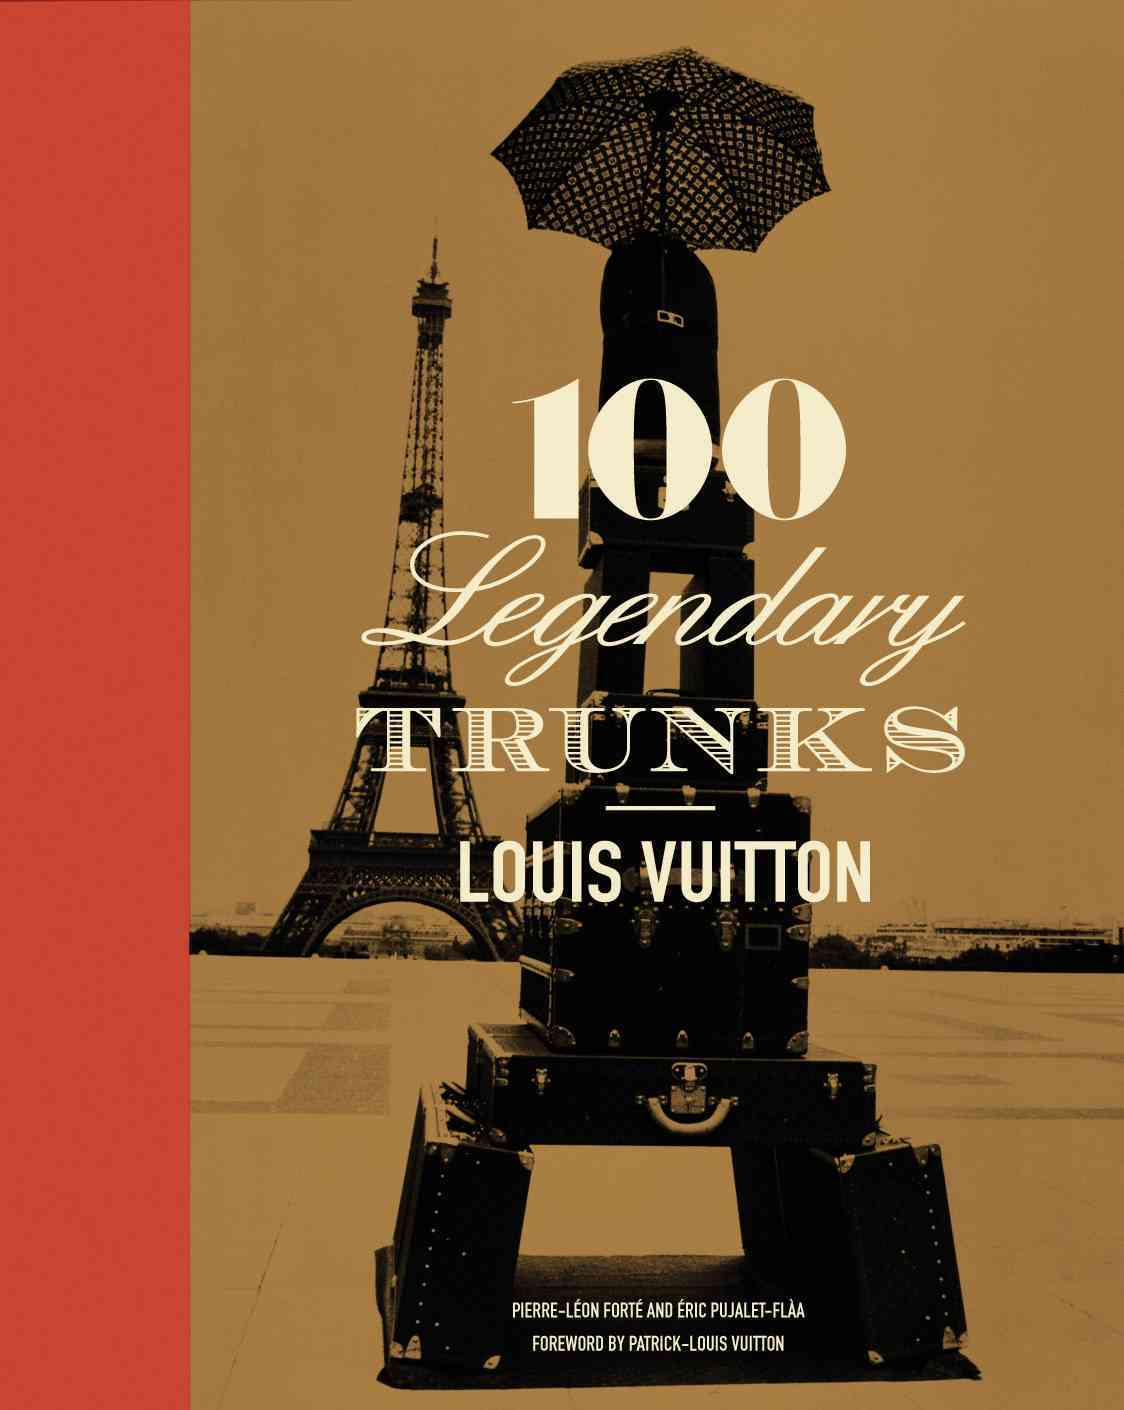 Louis Vuitton: 100 Legendary Trunks (Hardcover)